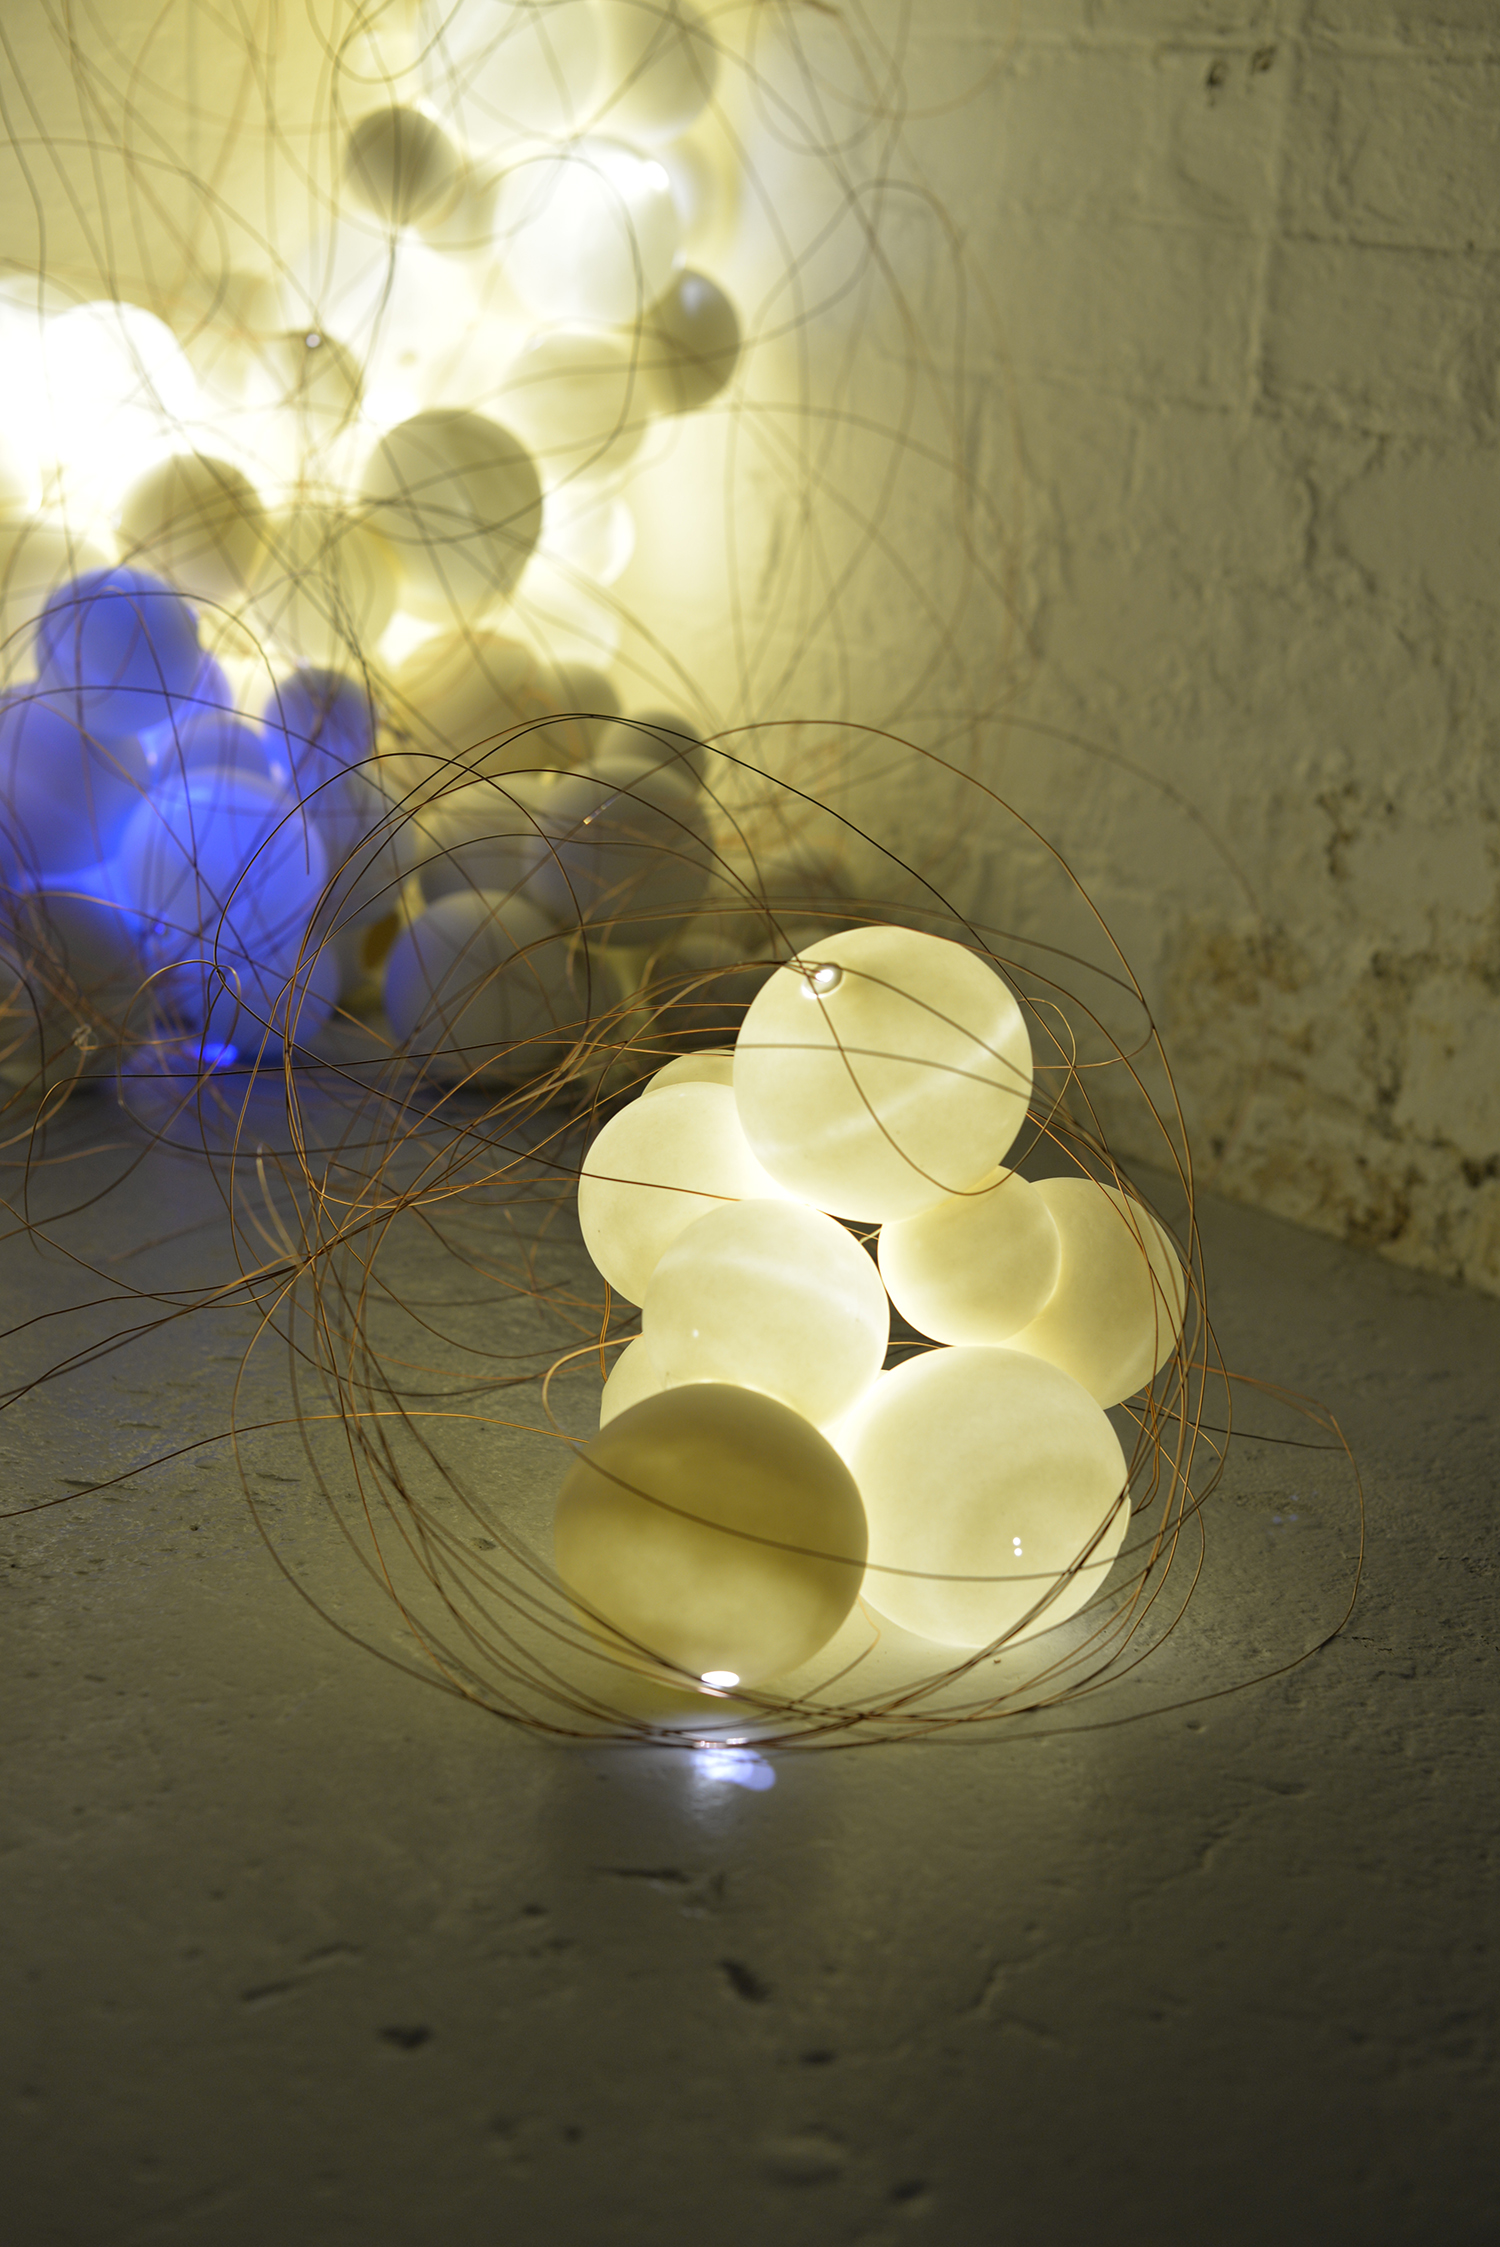 Intertwined_Dimension Variable_ Porcelain, LED lights, Wires_Leana Kim.jpg